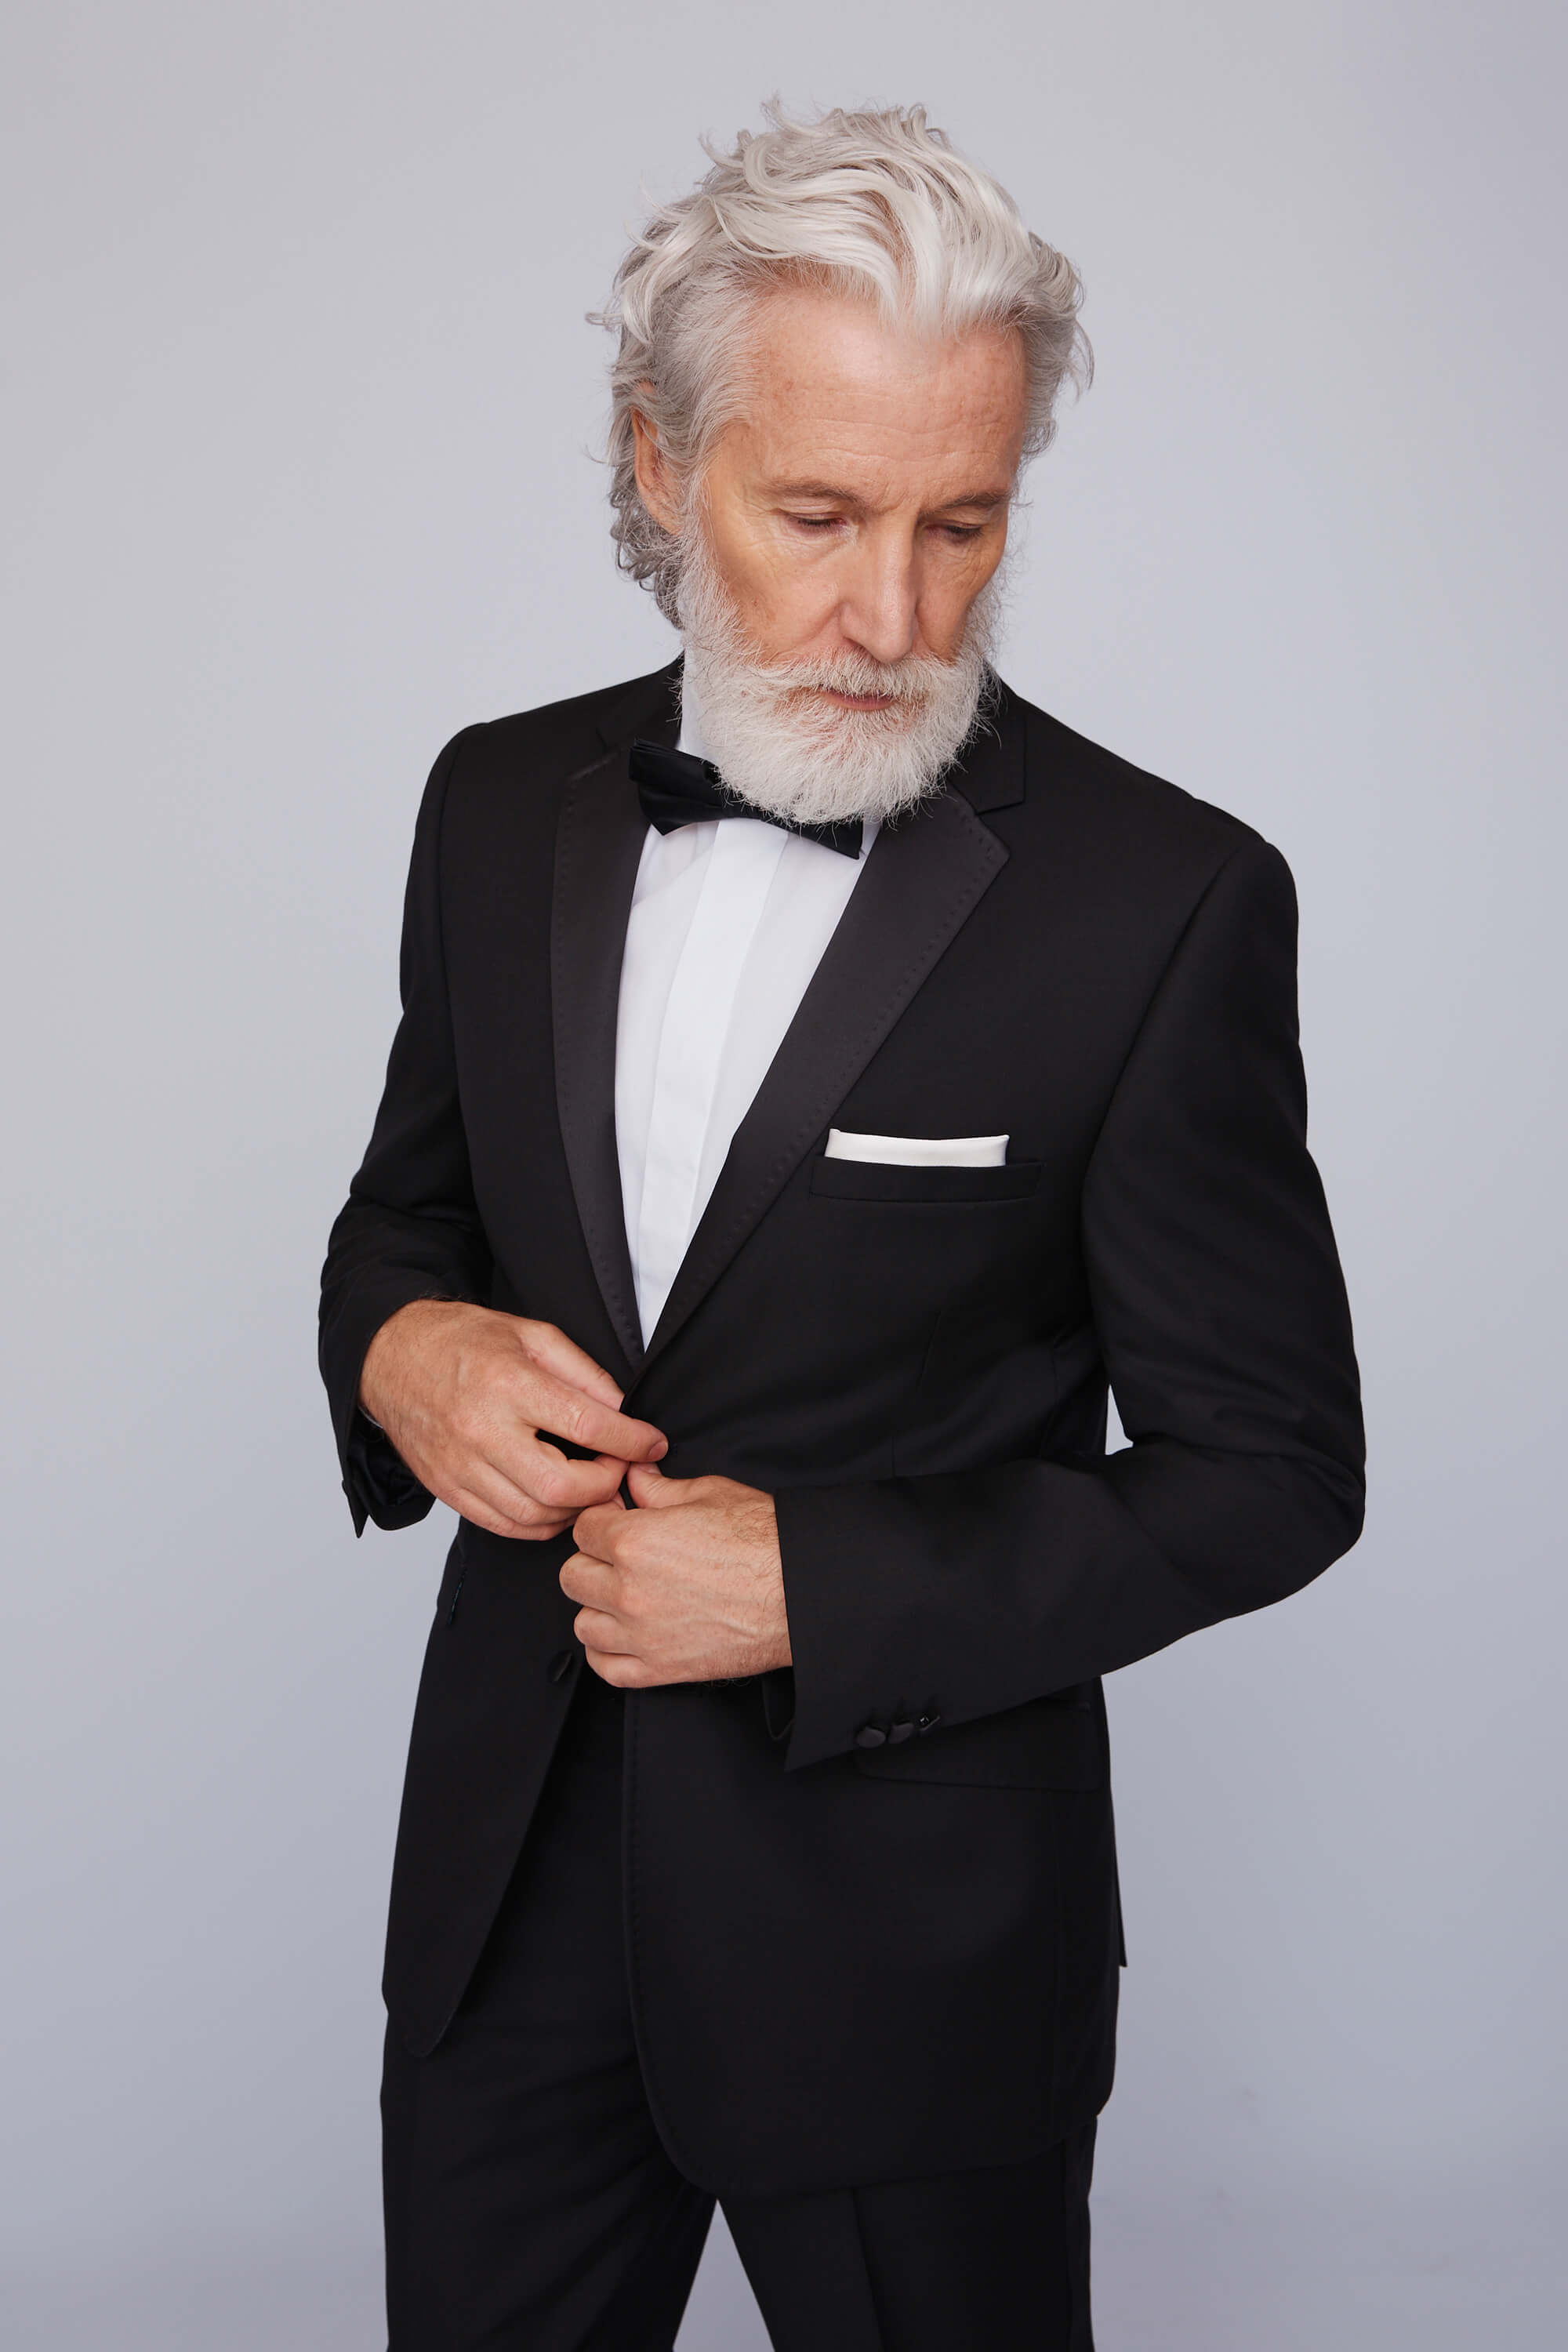 Dinner jackets are great for versatility, if the occasion isn't black tie, a dinner jacket can be adapted to suit the event. Don't mess with the rules of the tuxedo. Some rules are .